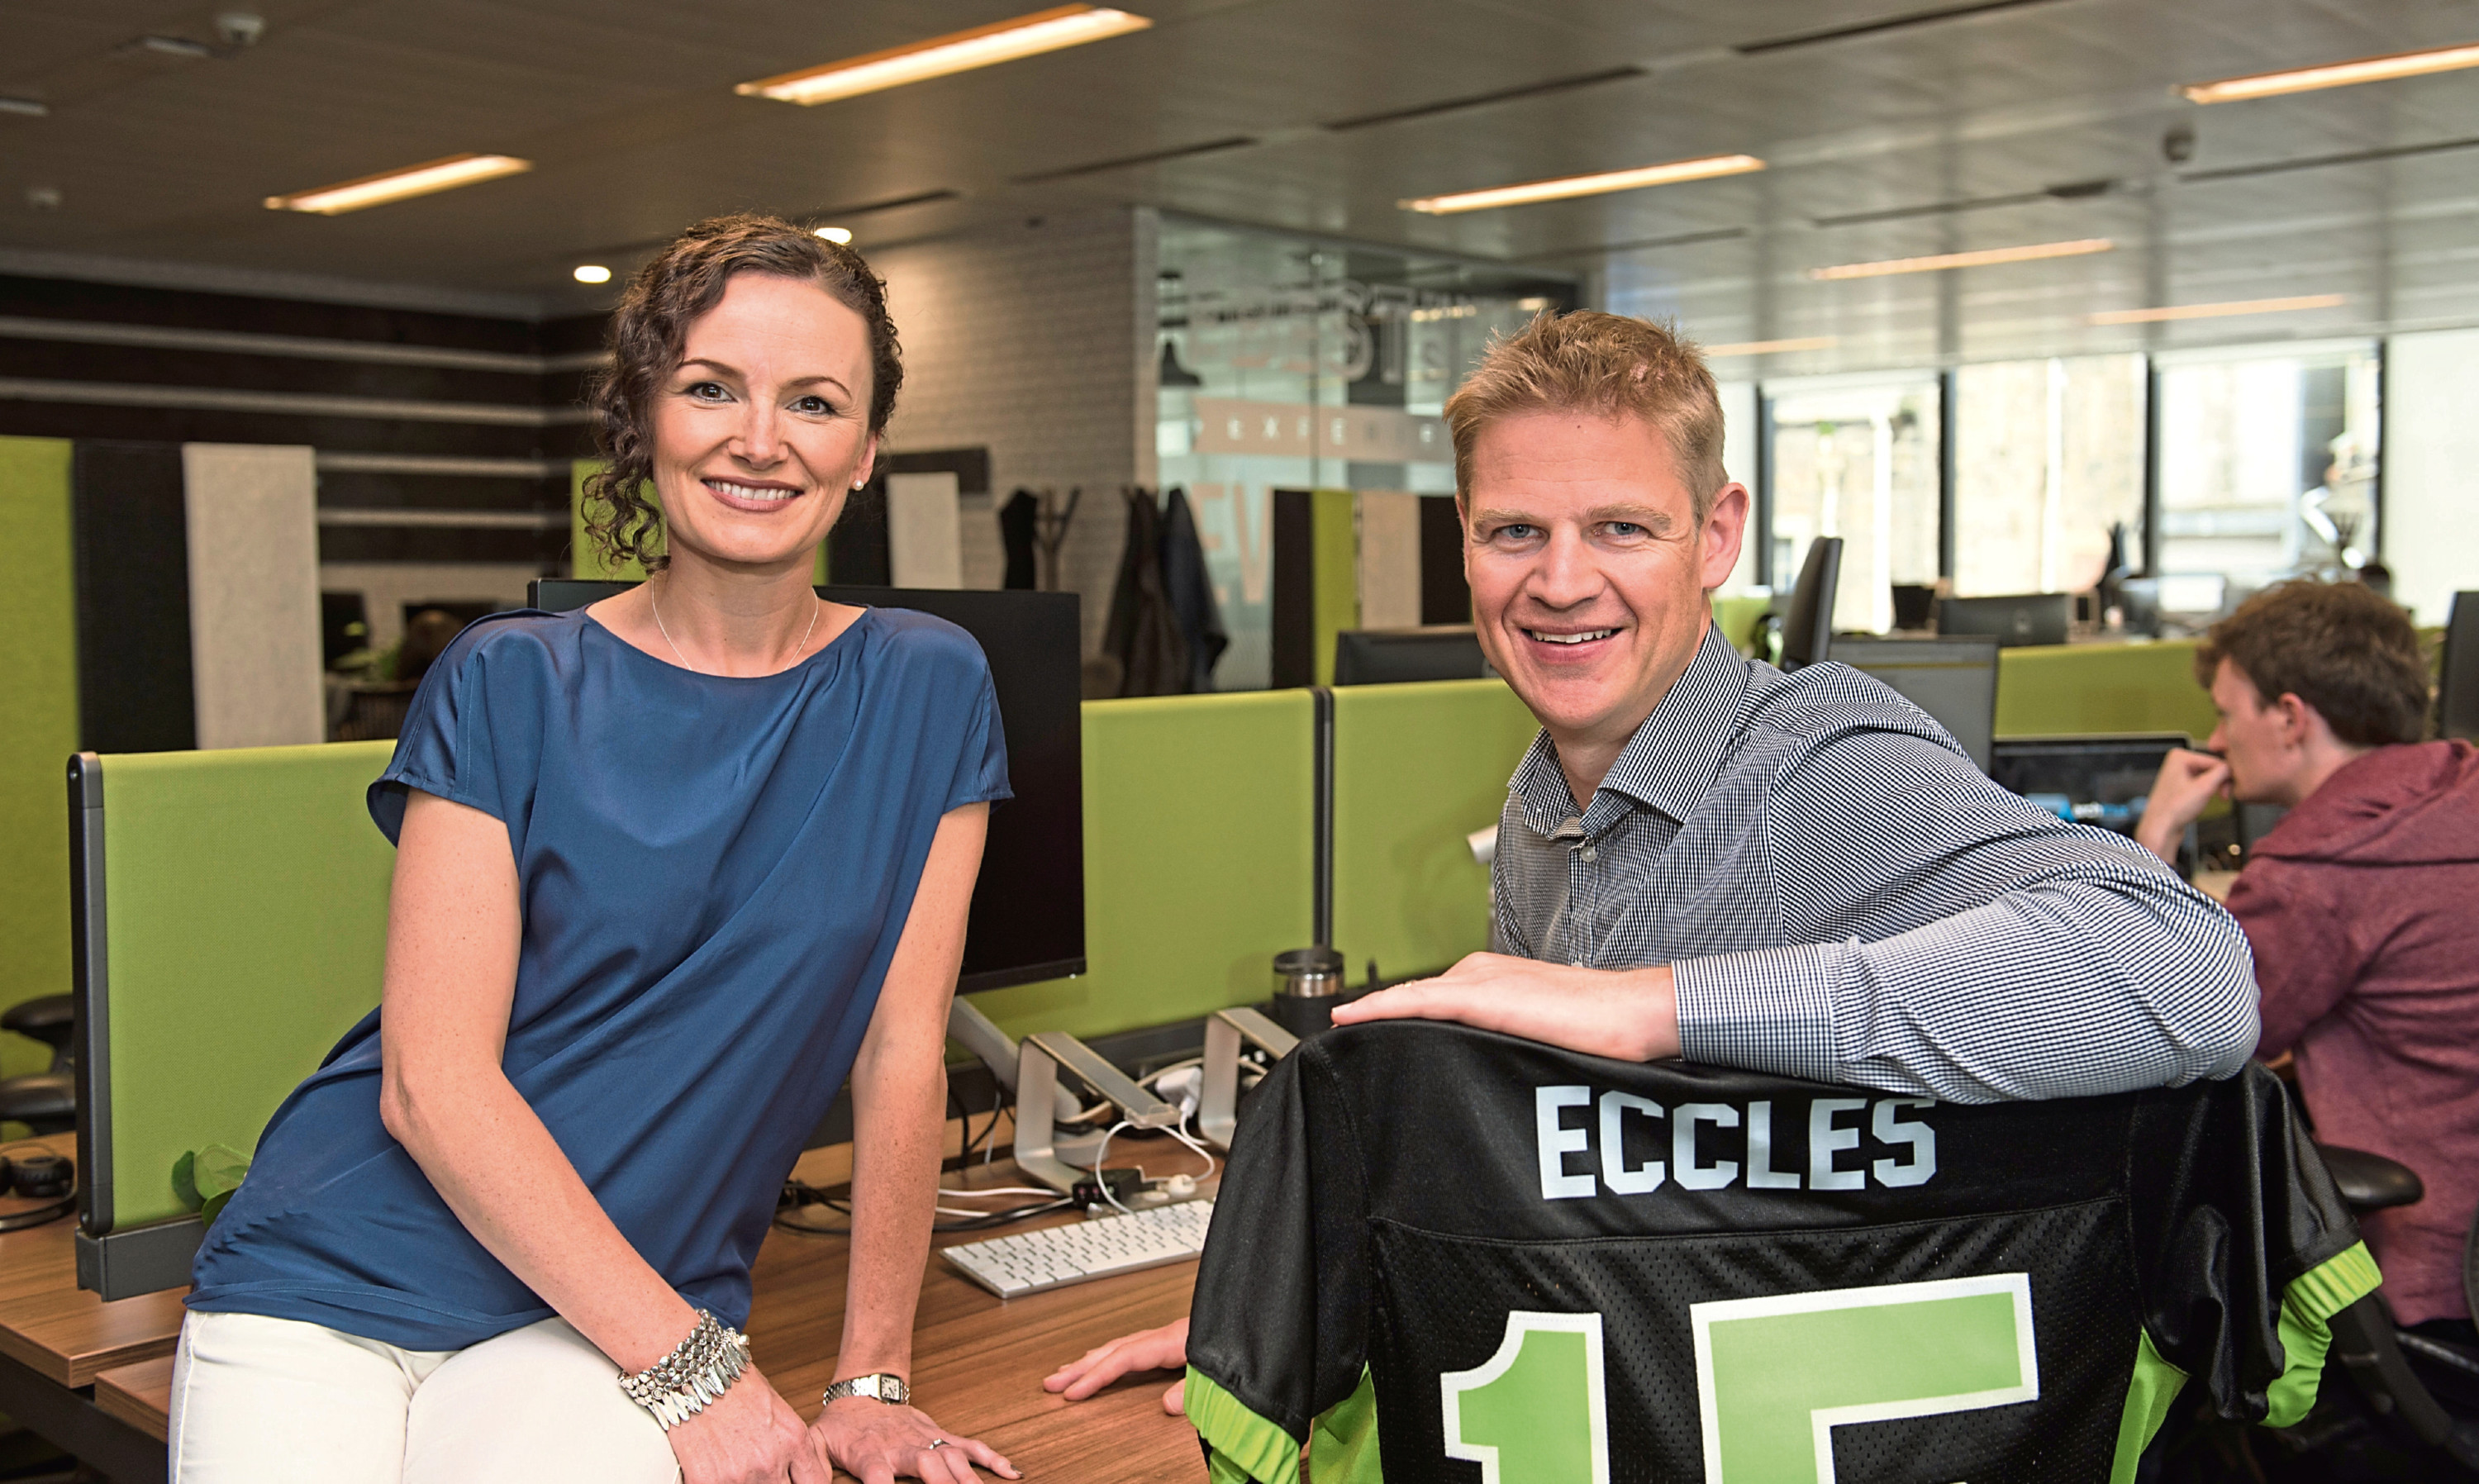 FanDuel founders Lesley and NIgel Eccles